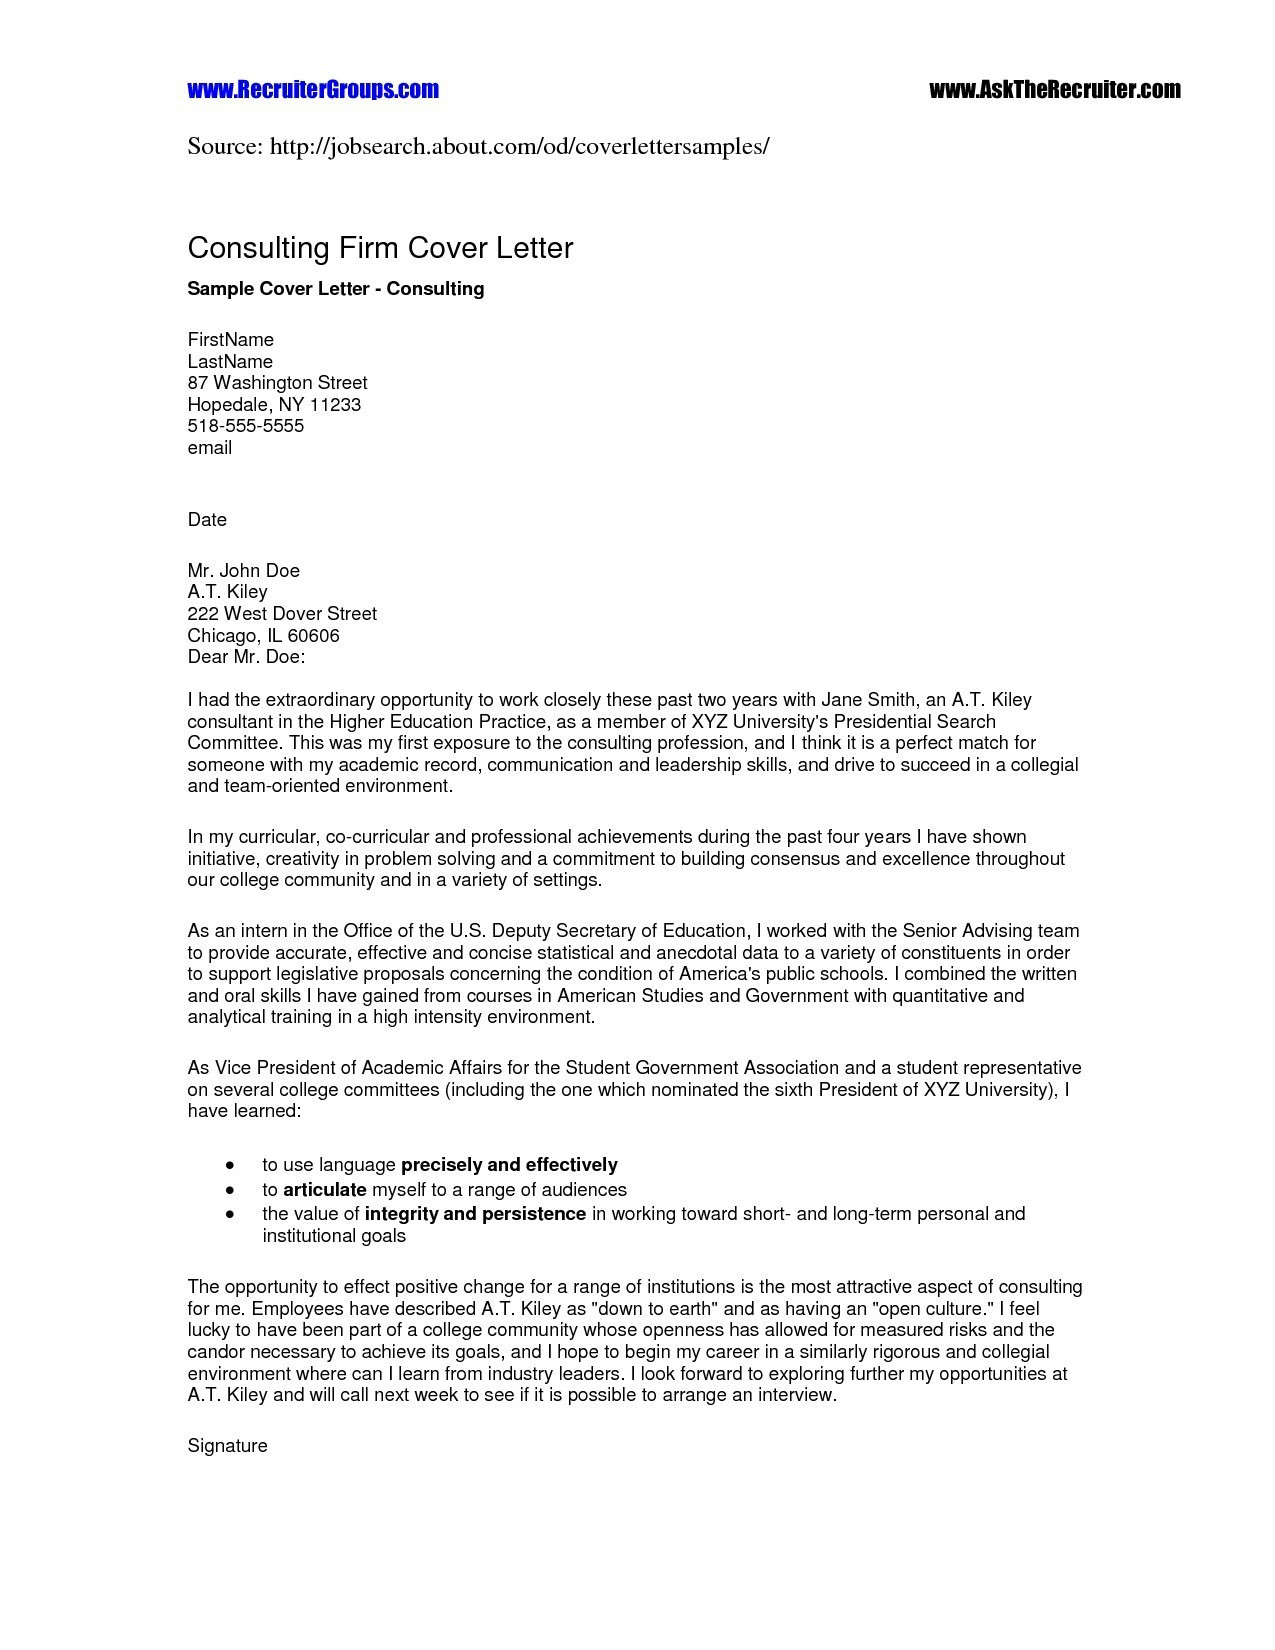 Property Inspection Letter to Tenant Template - Home Inspection Contracts Agreements Elegant Property Inspection